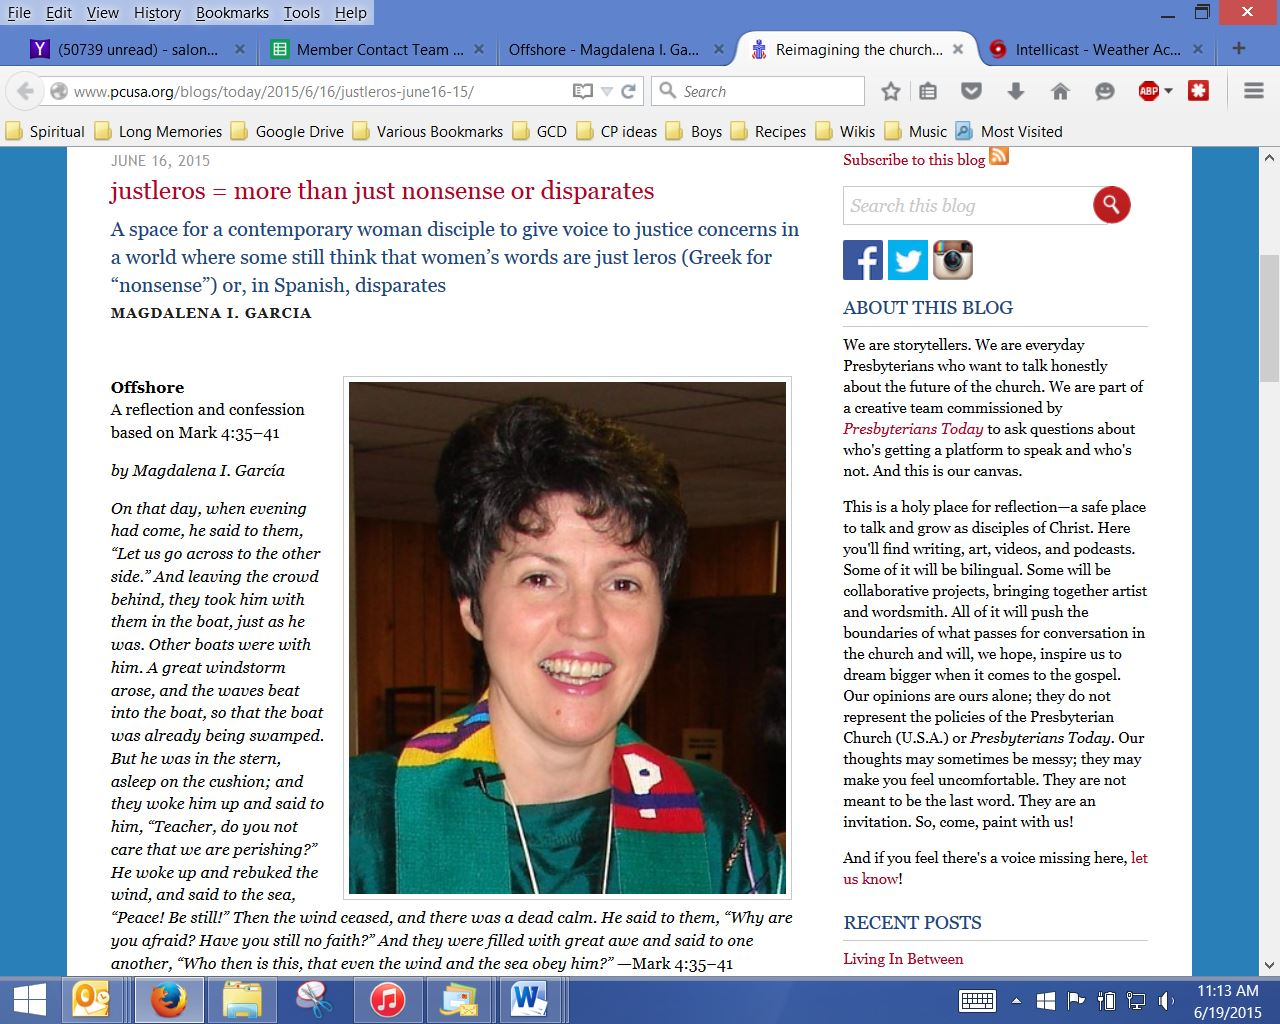 Offshore_Magdalena Garcia_Presbyterians Today_page1